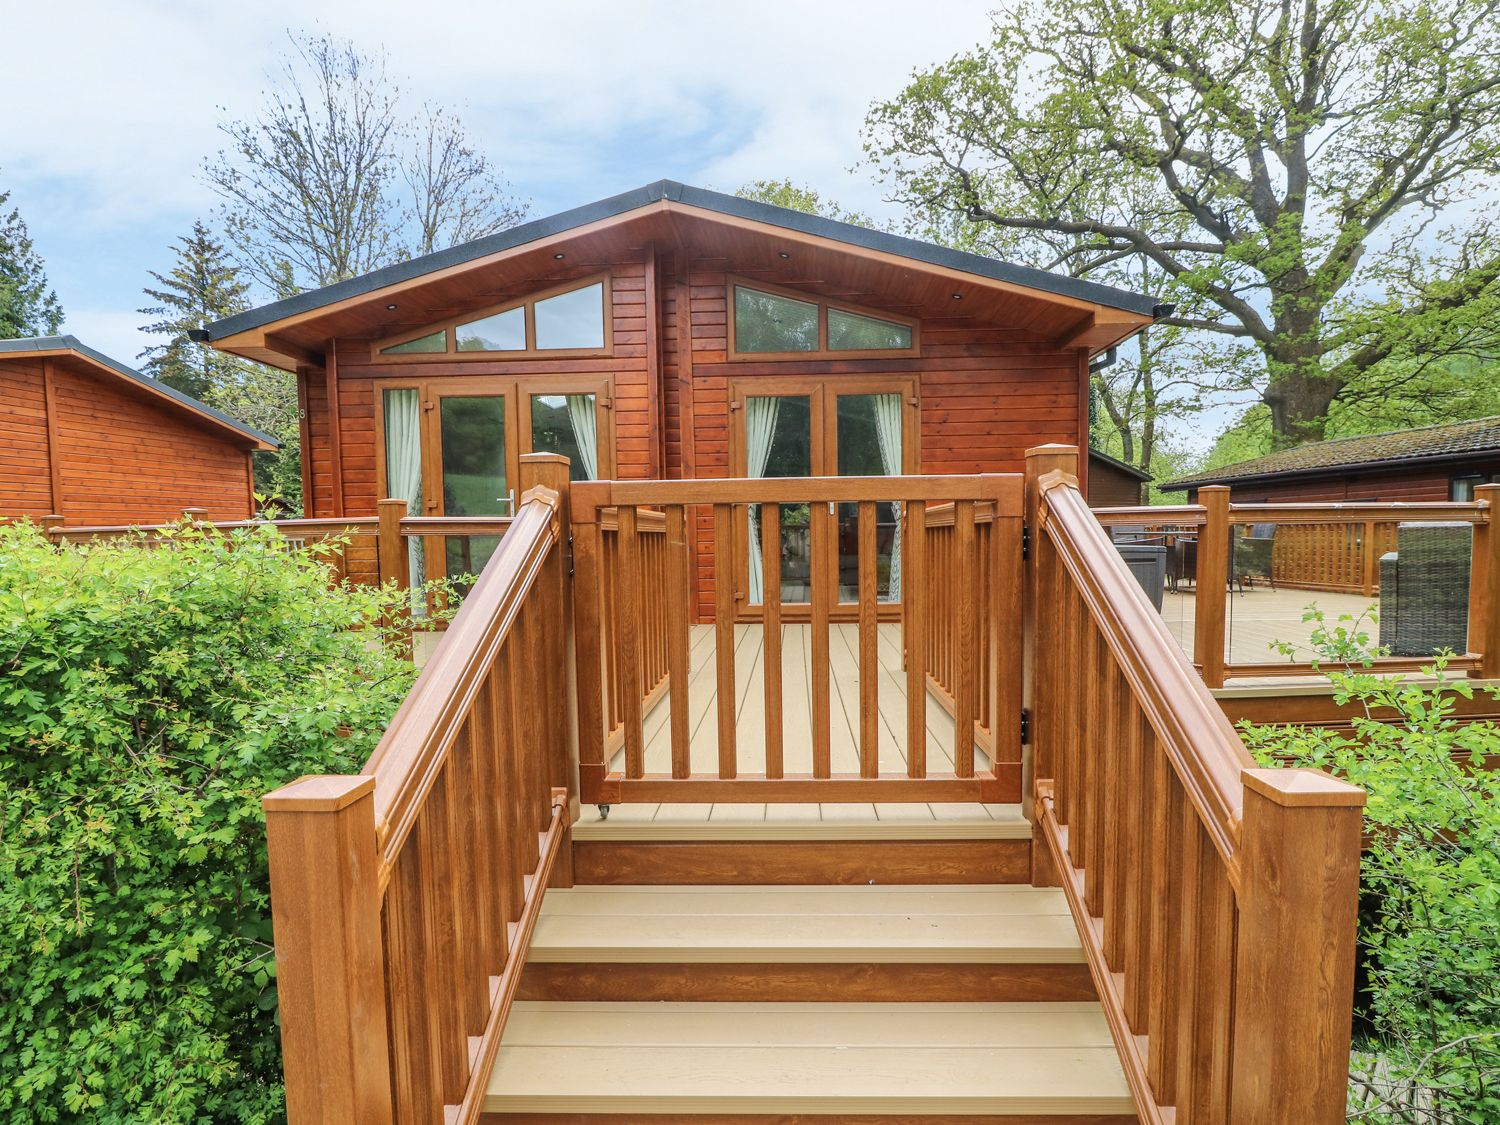 8 Waterside Wood - Lake District - 937796 - photo 1